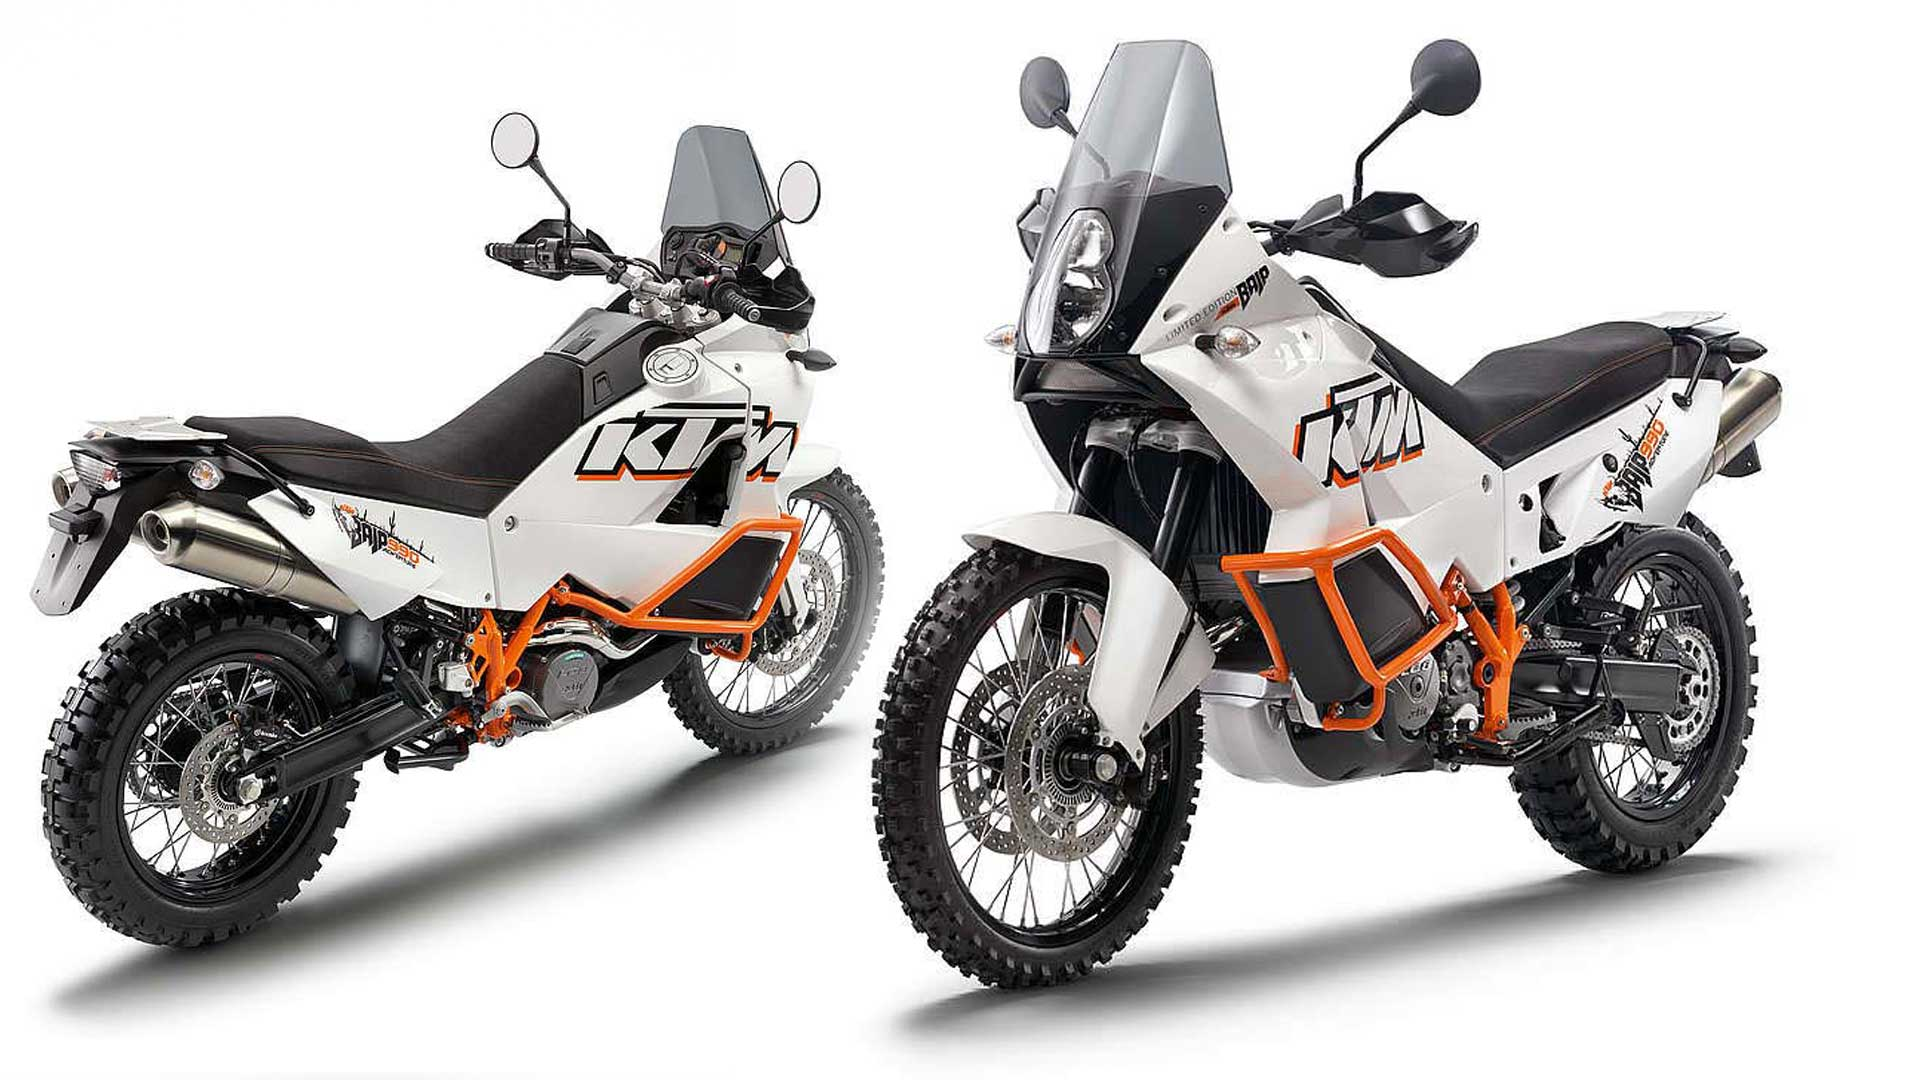 Ktm Adventure R Vs Dakar